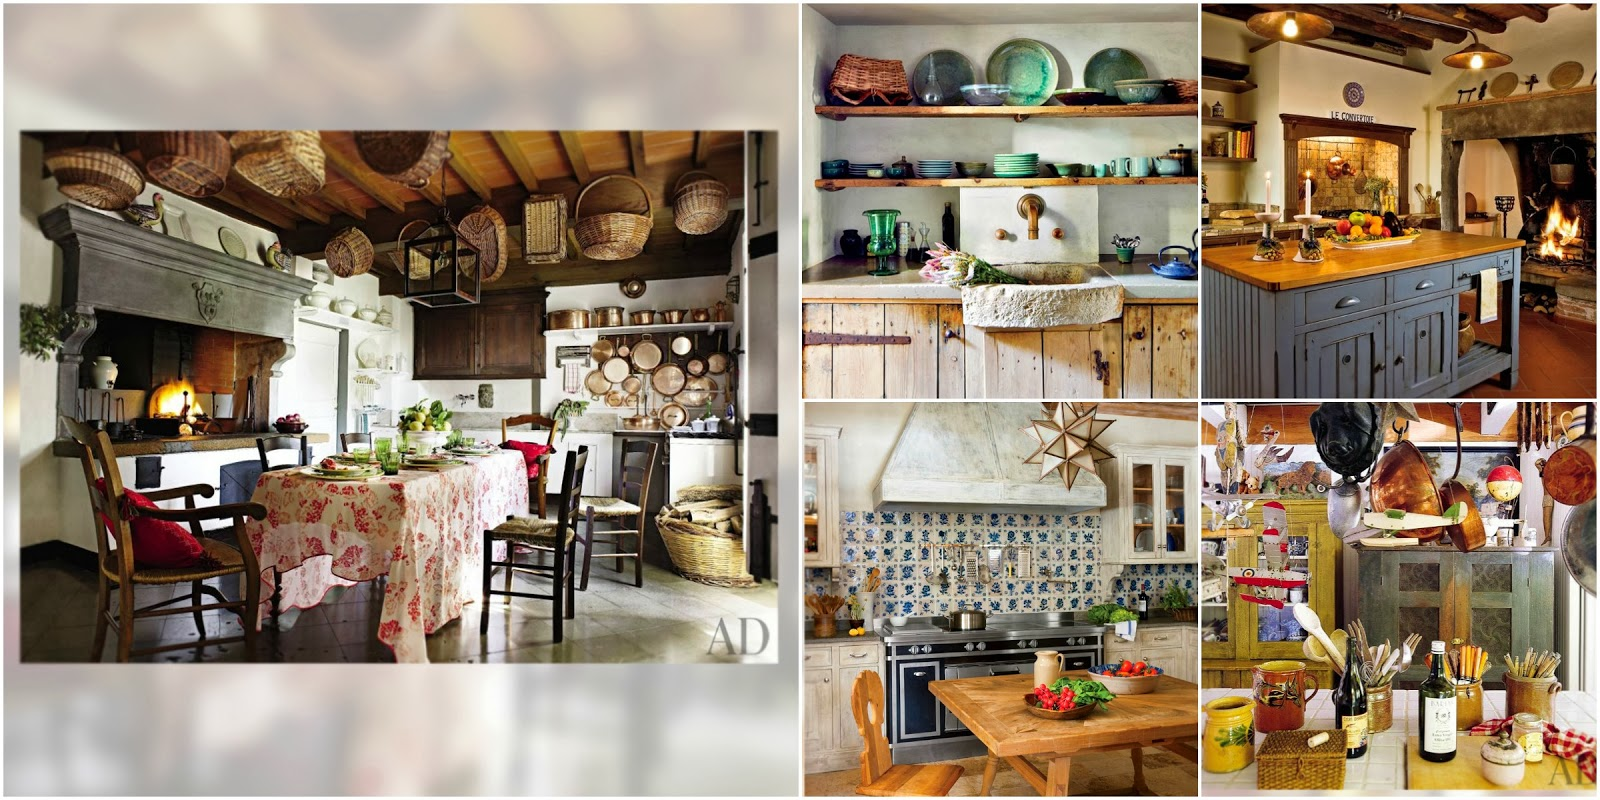 Best of 2013, Cocinas Rústicas, Kitchen, Cottage, Rustic